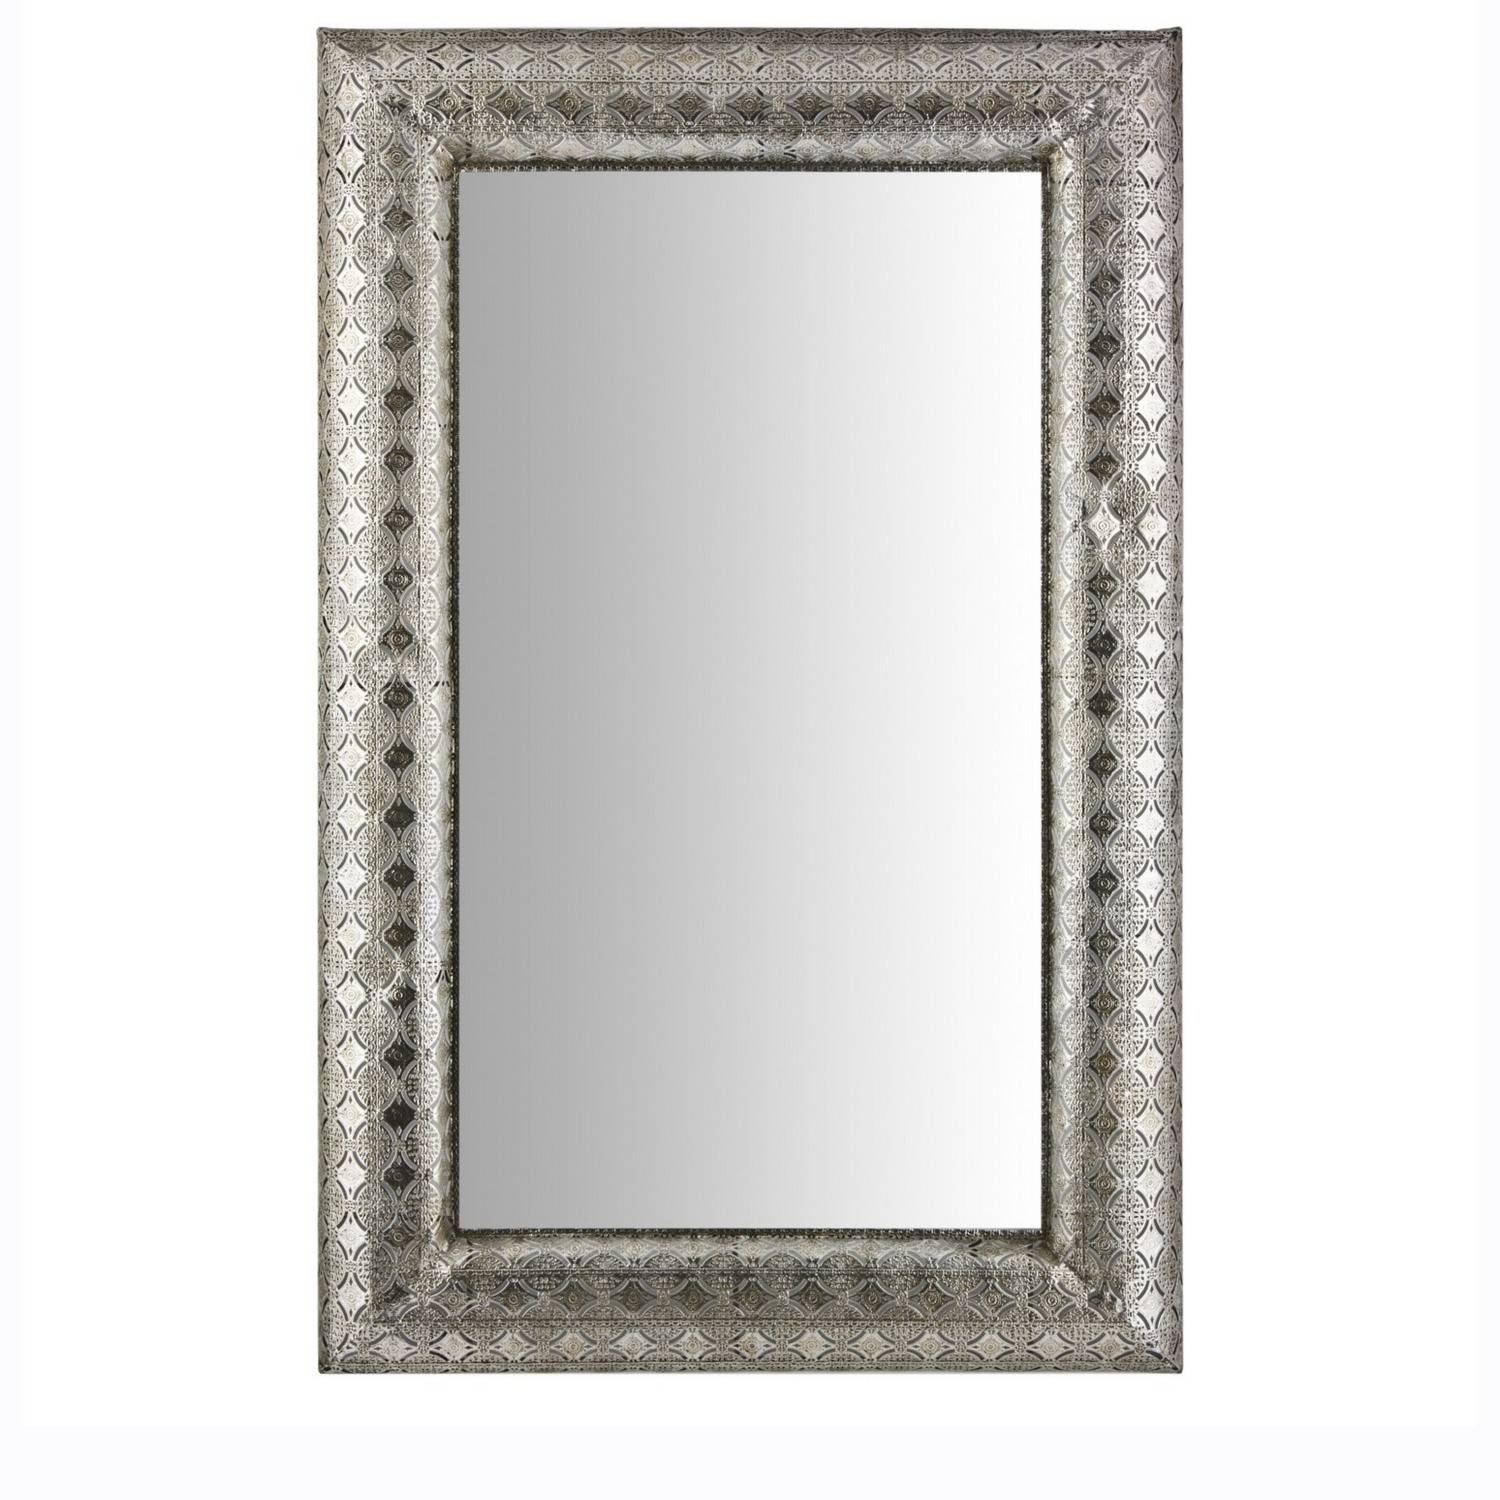 Large Moroccan Mirror regarding Silver Mirrors (Image 10 of 25)